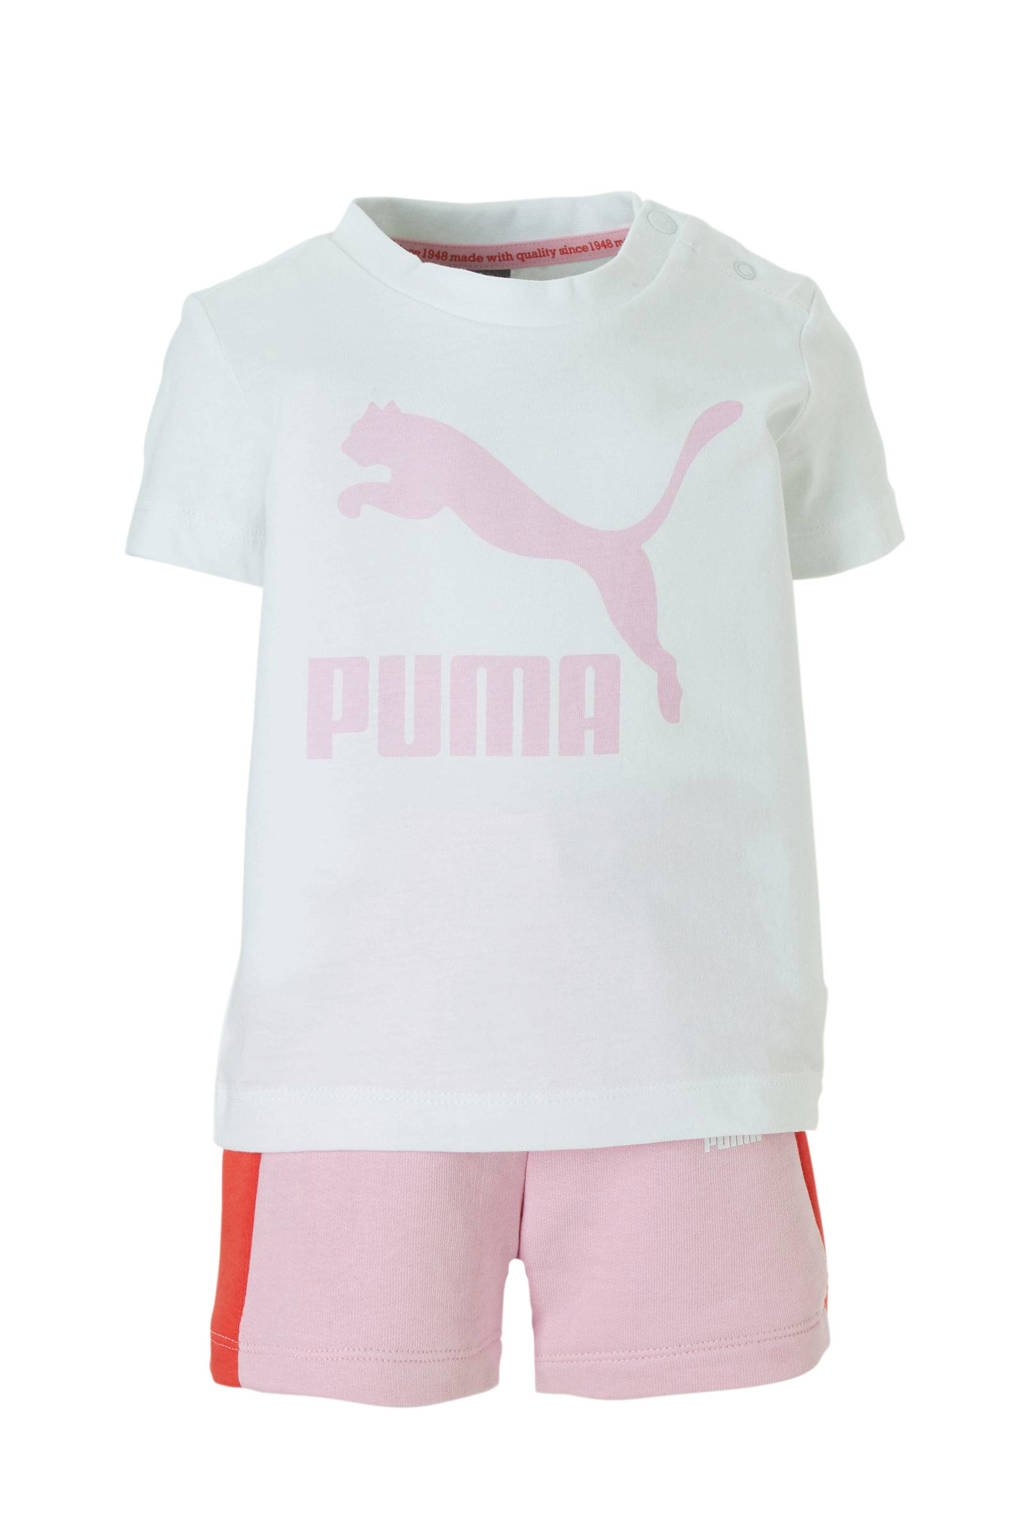 Puma baby T-shirt + short, Wit/roze/rood